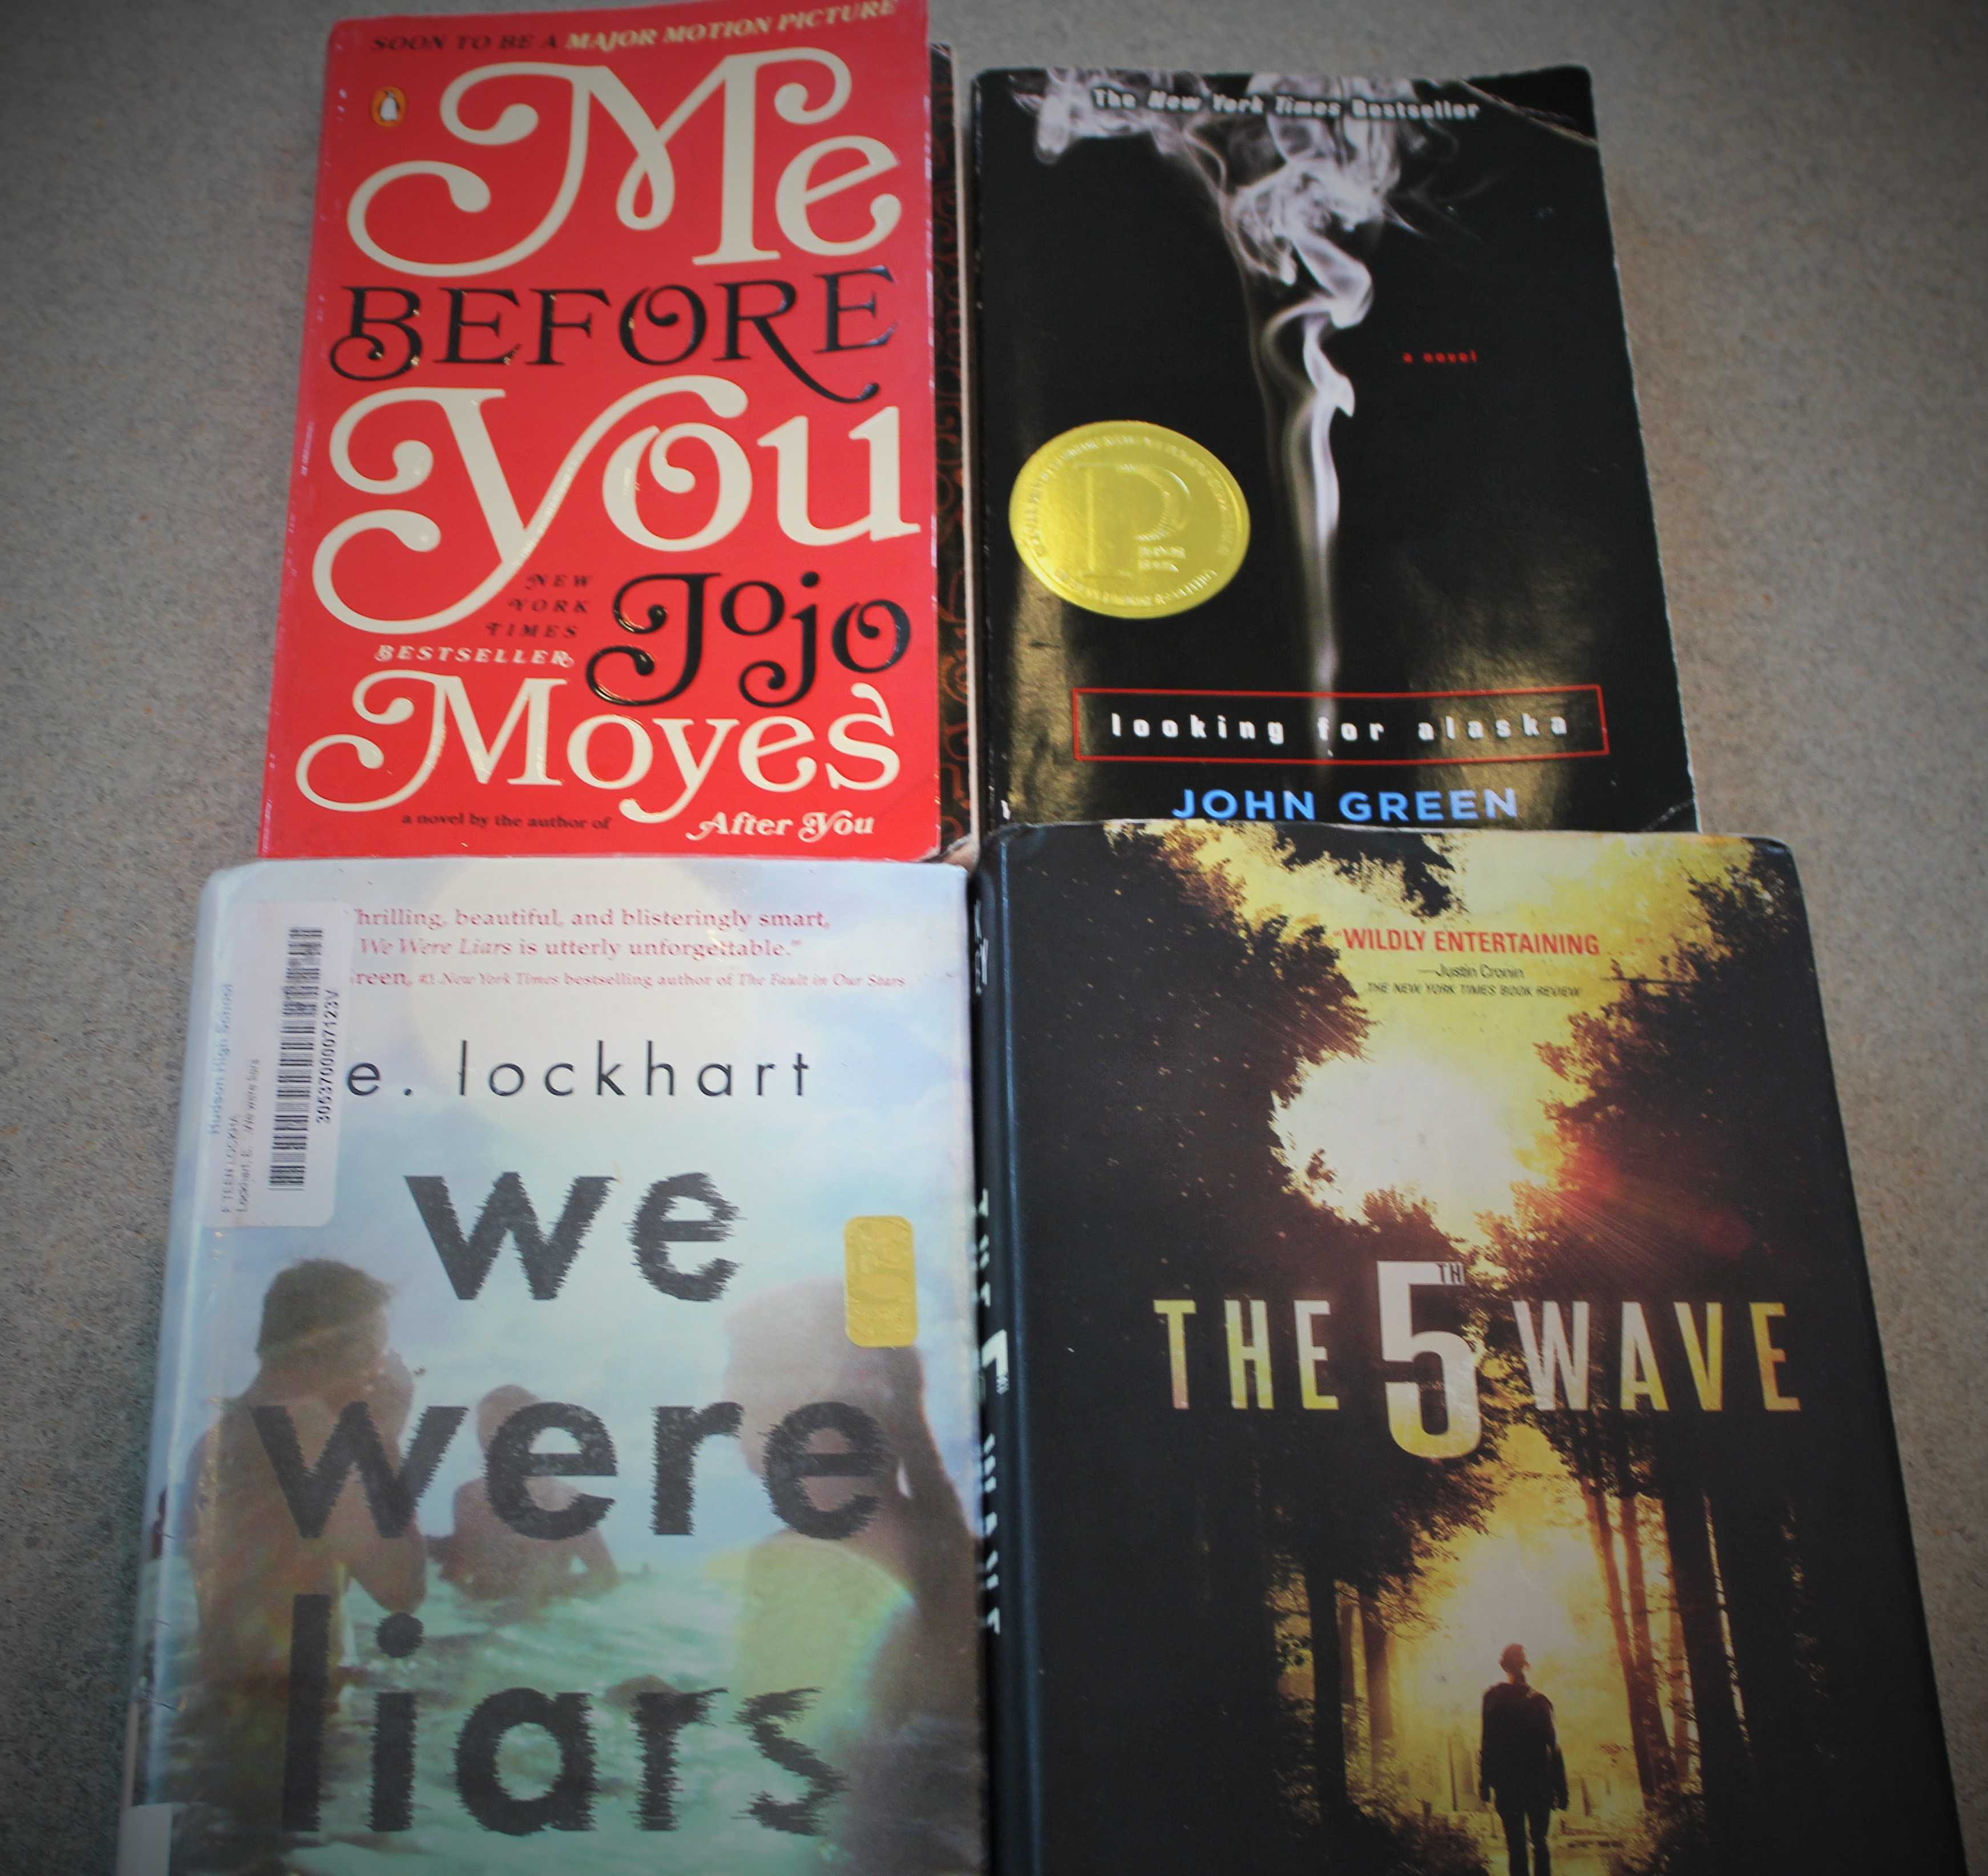 Me Before You by Jojo Moyes, Looking for Alaska by John Green, We were Liars by E. Lockheart, and The 5th Wave by Rick Yancey. |Tess McDonald